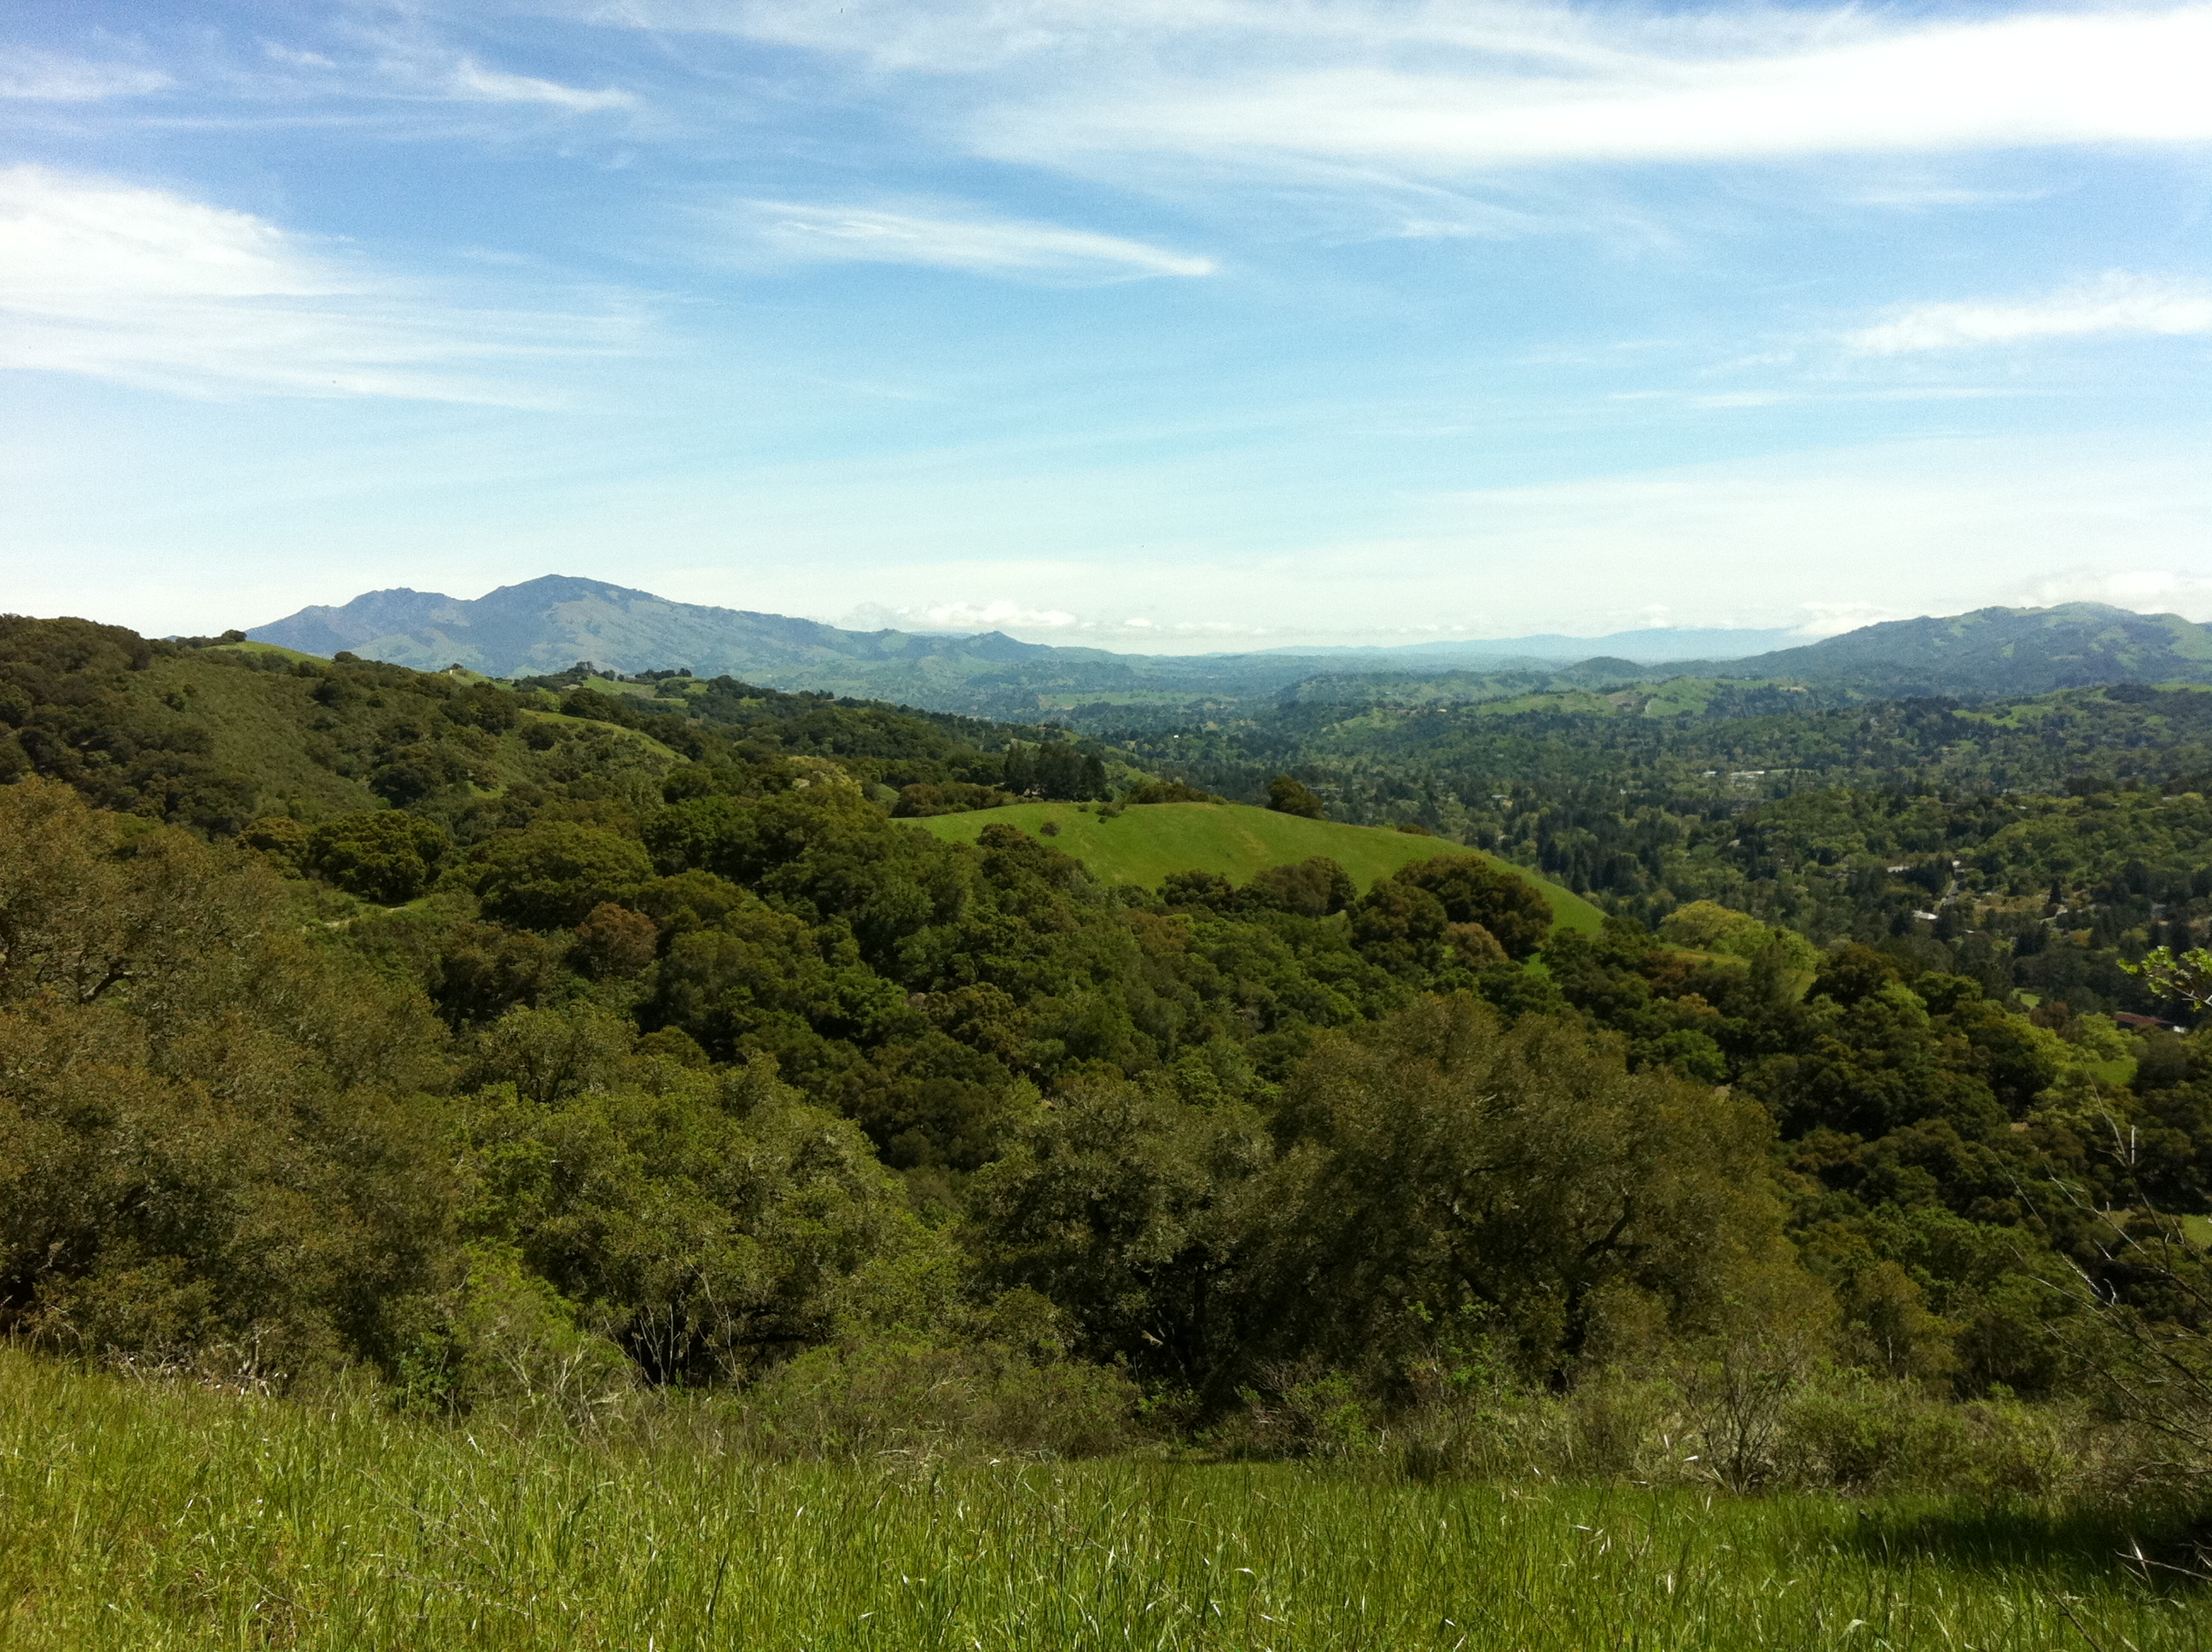 The Valley of the Moon in northern Sonoma County